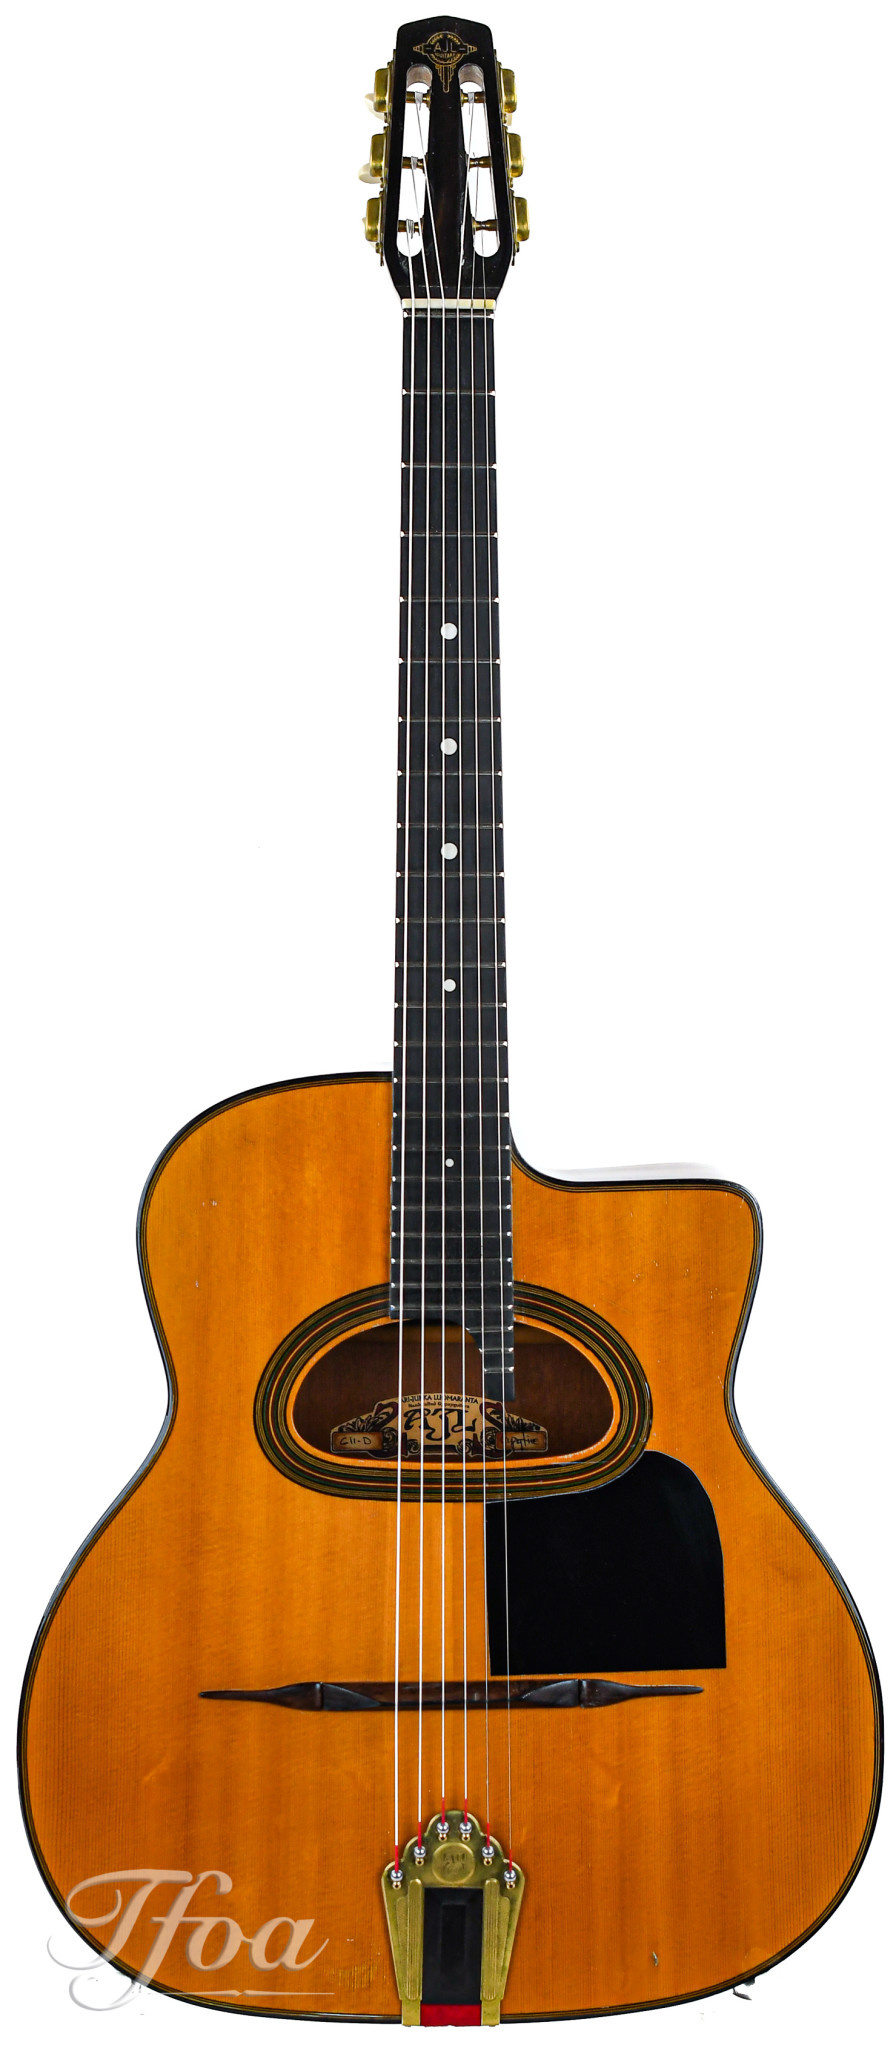 AJL Gypsy Fire Figured Rosewood Maccaferri Style 2011